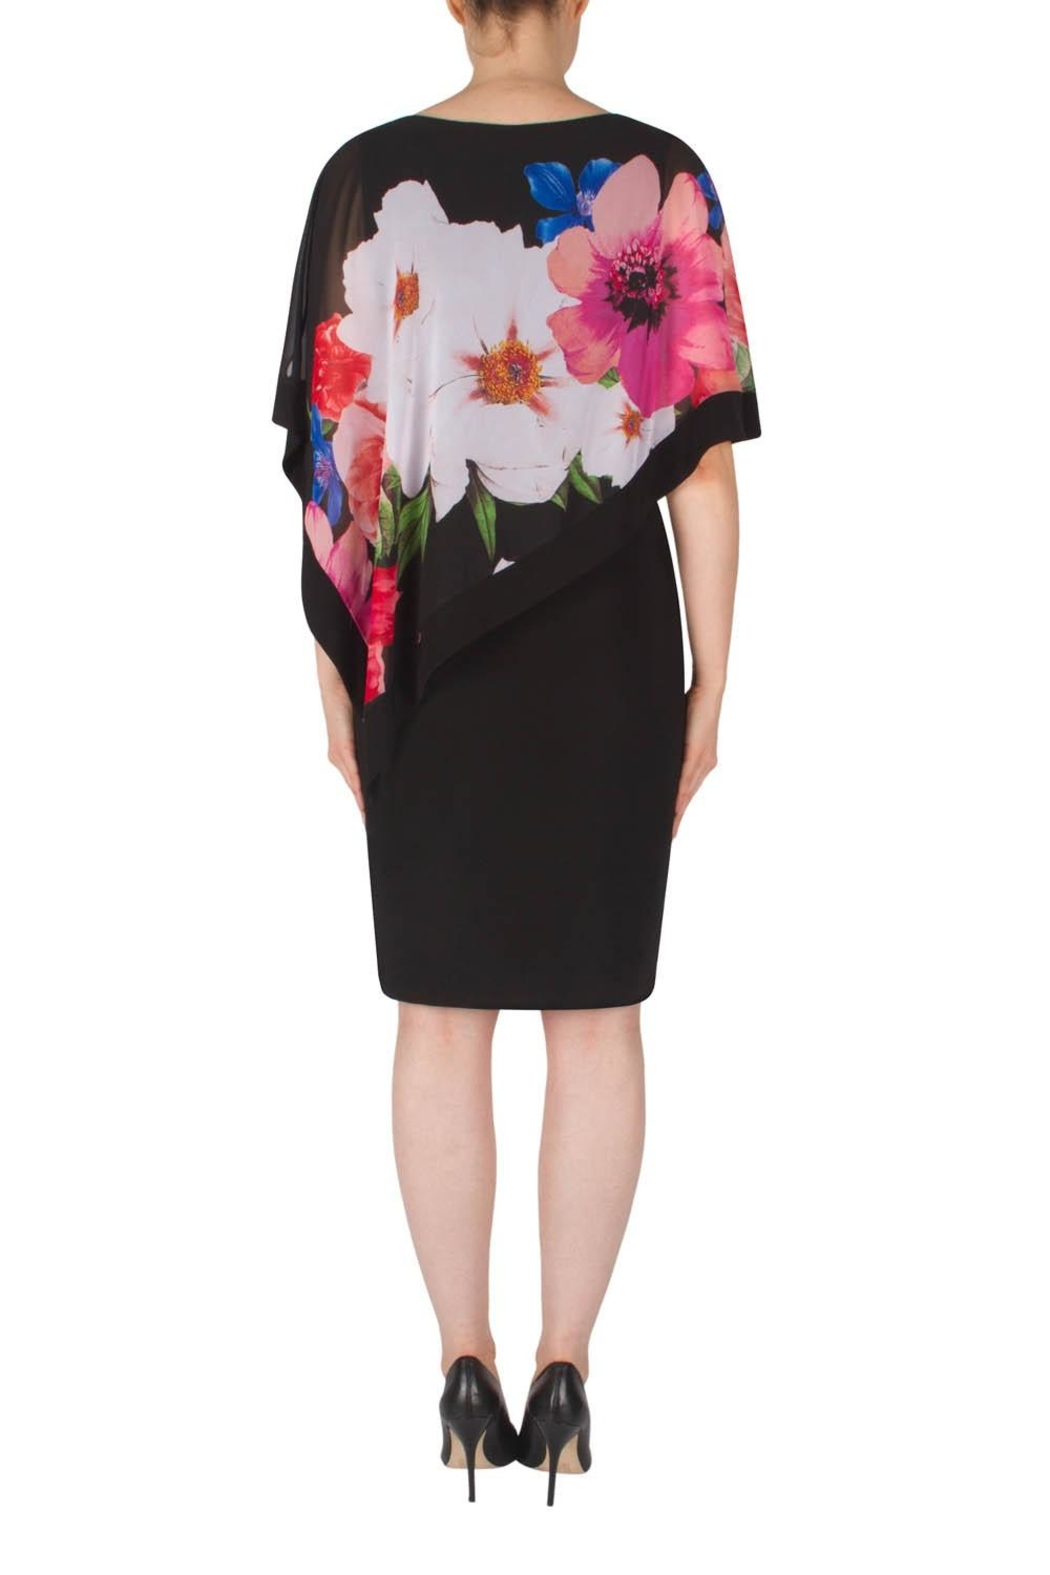 Joseph Ribkoff Floral Overlay Dress - Side Cropped Image